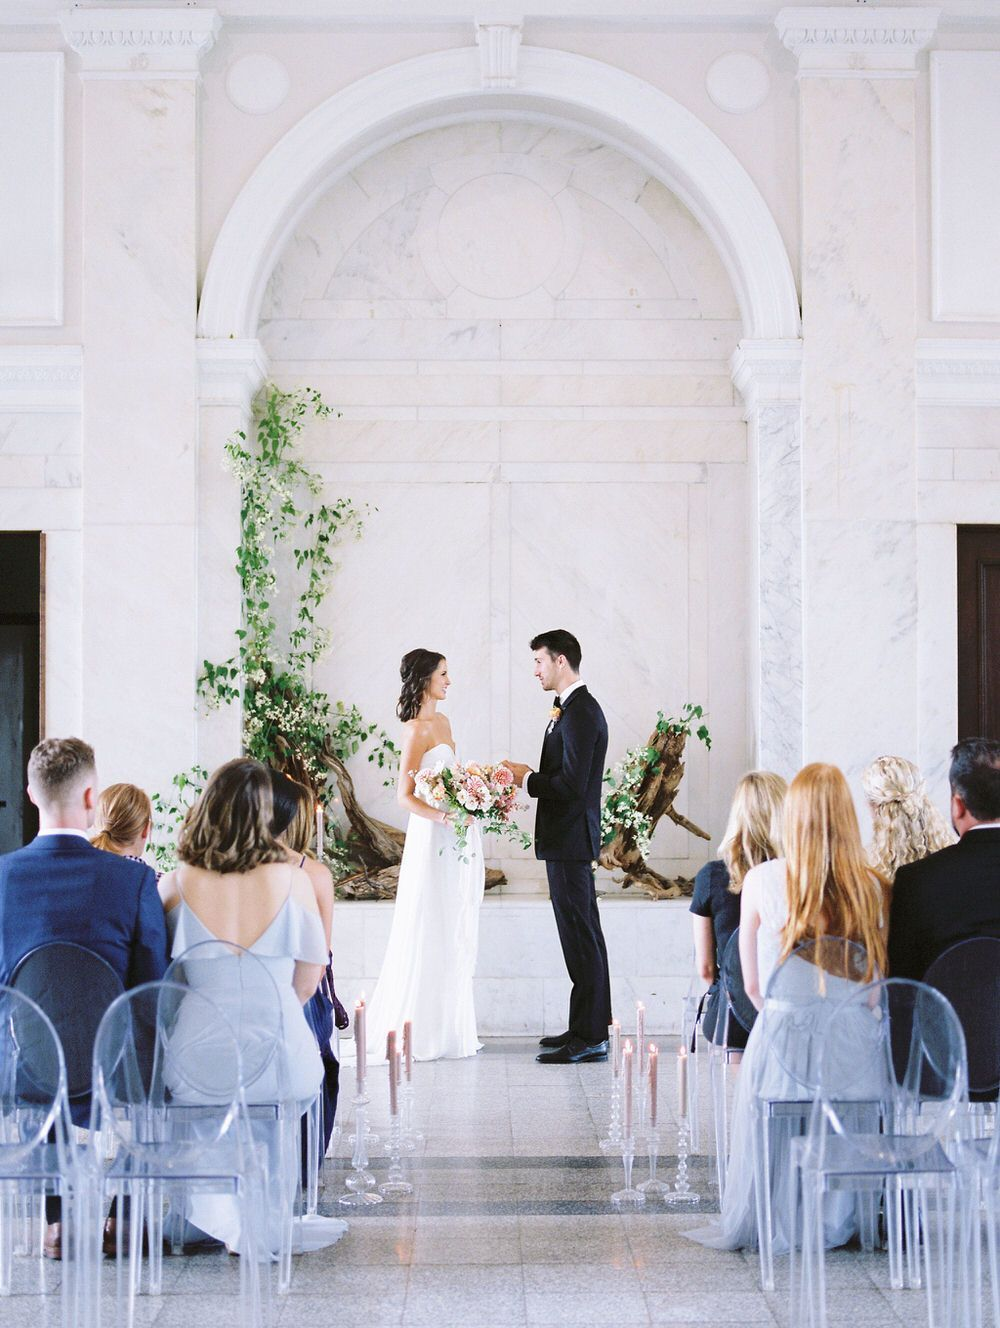 Micro Wedding Inspiration At Historic Dekalb Courthouse The Crisp White Backdrop Of The Wedding Venue Created A Blank Slate For Some Flo Wedding Inspiration Modern Wedding Inspiration Creative Wedding Inspiration